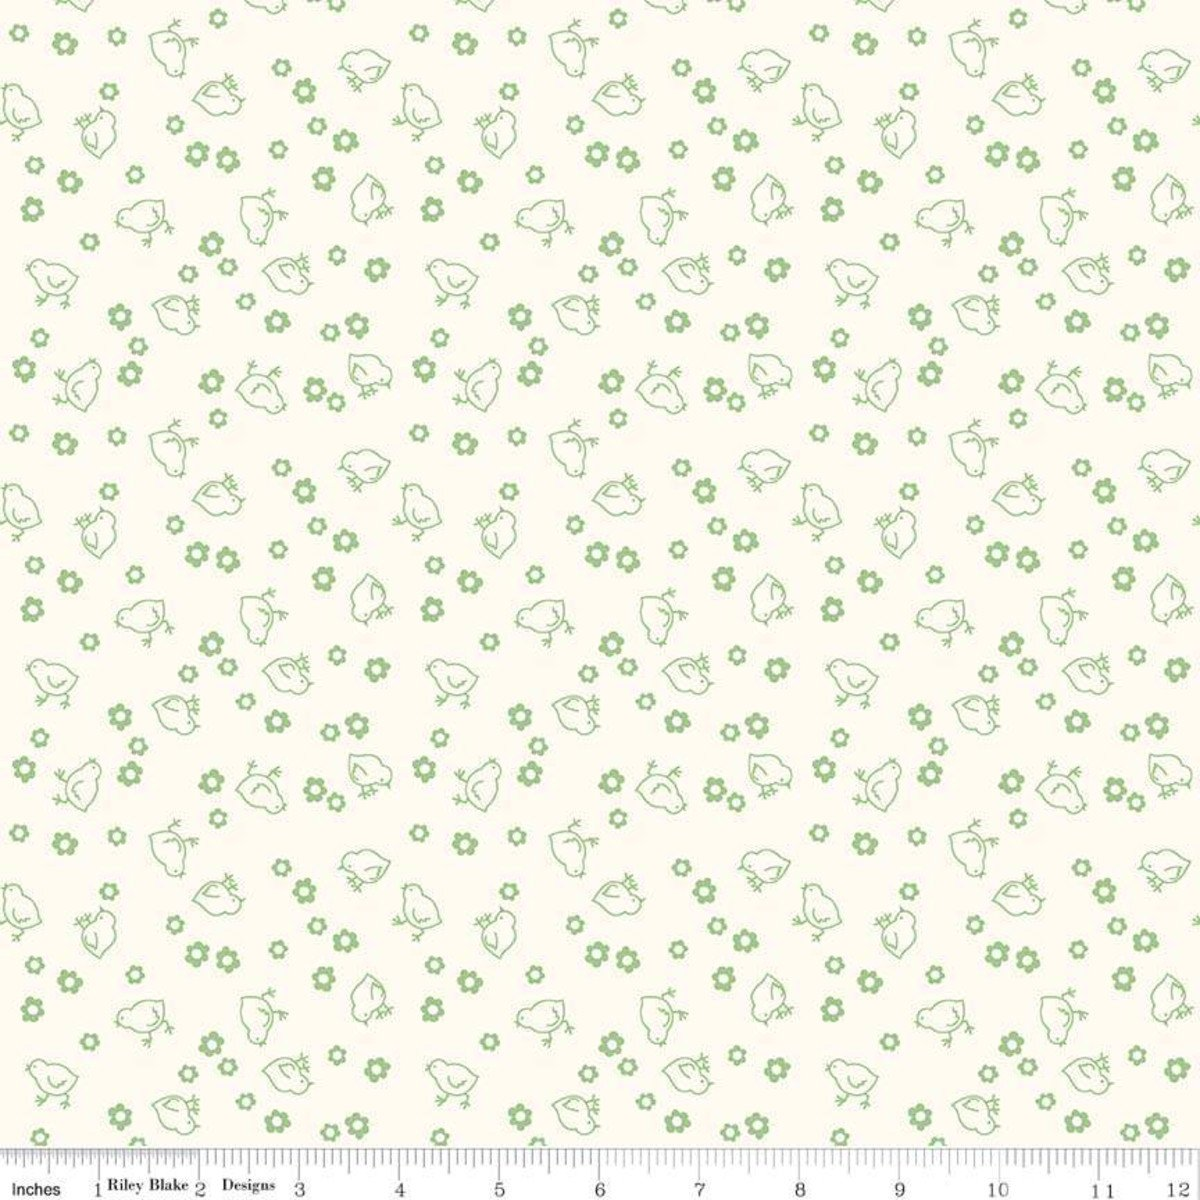 108 Chick Quilt Back Green